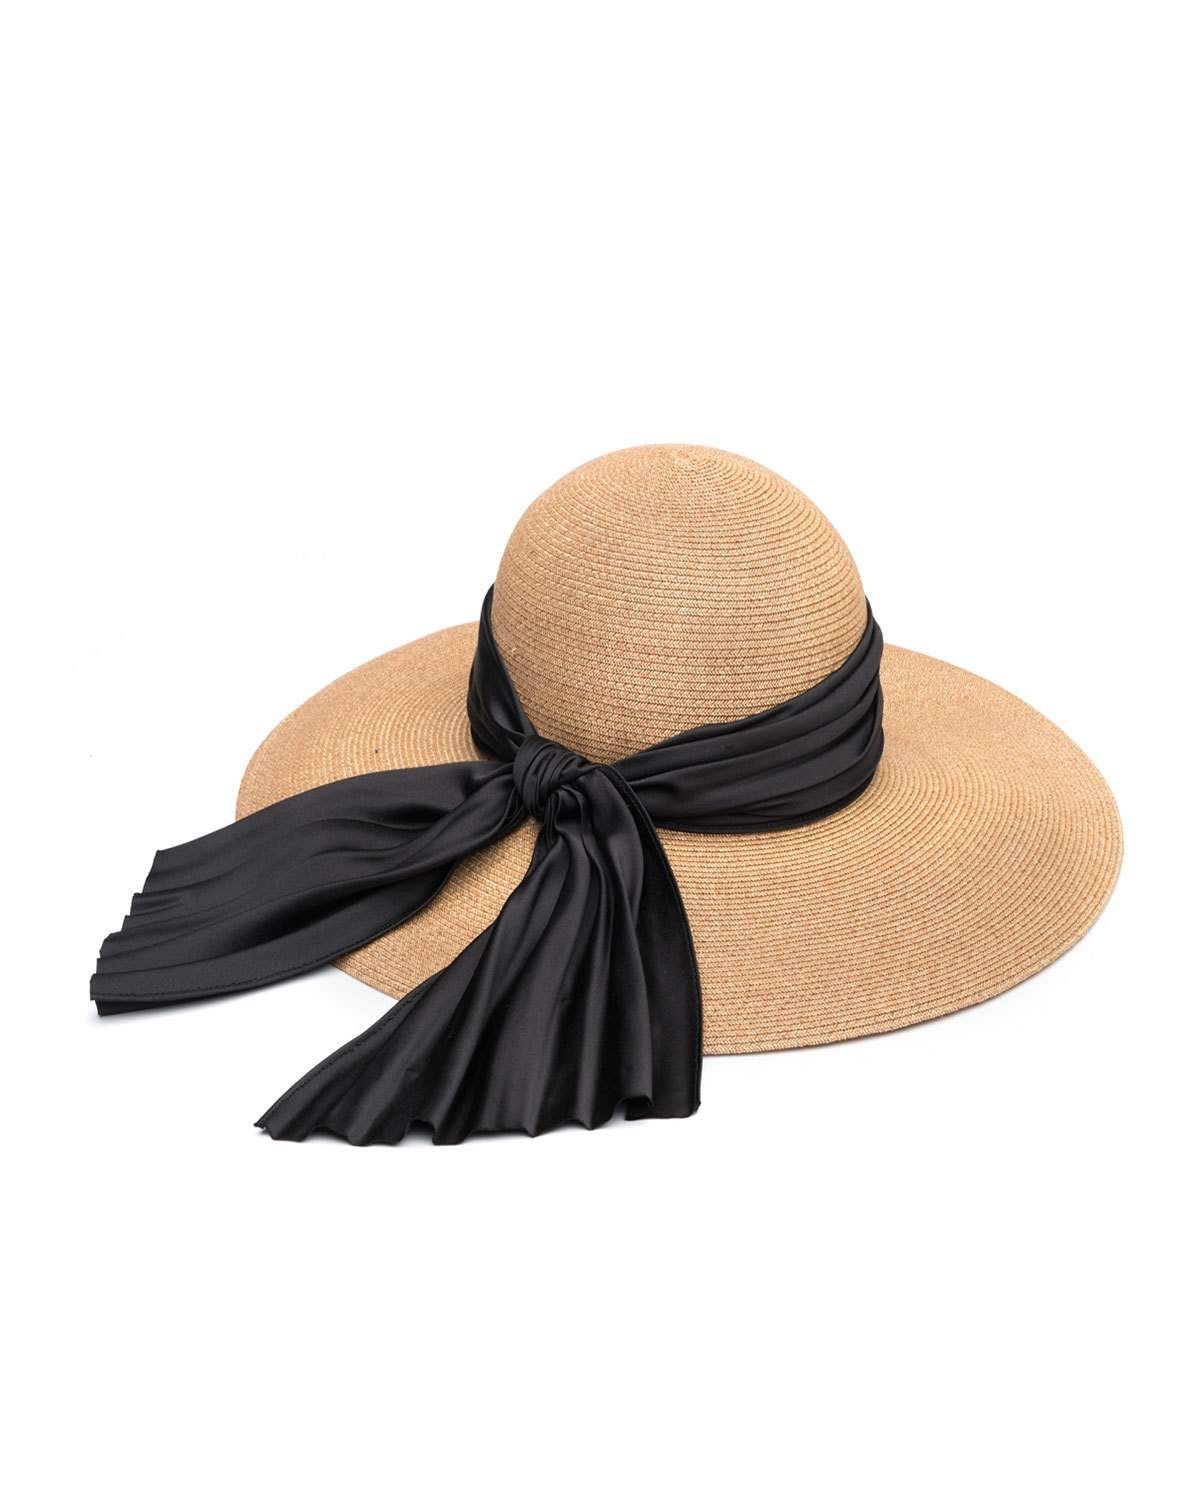 9898b612 Honey Floppy Sun Hat with Satin Band | Products | Floppy sun hats ...